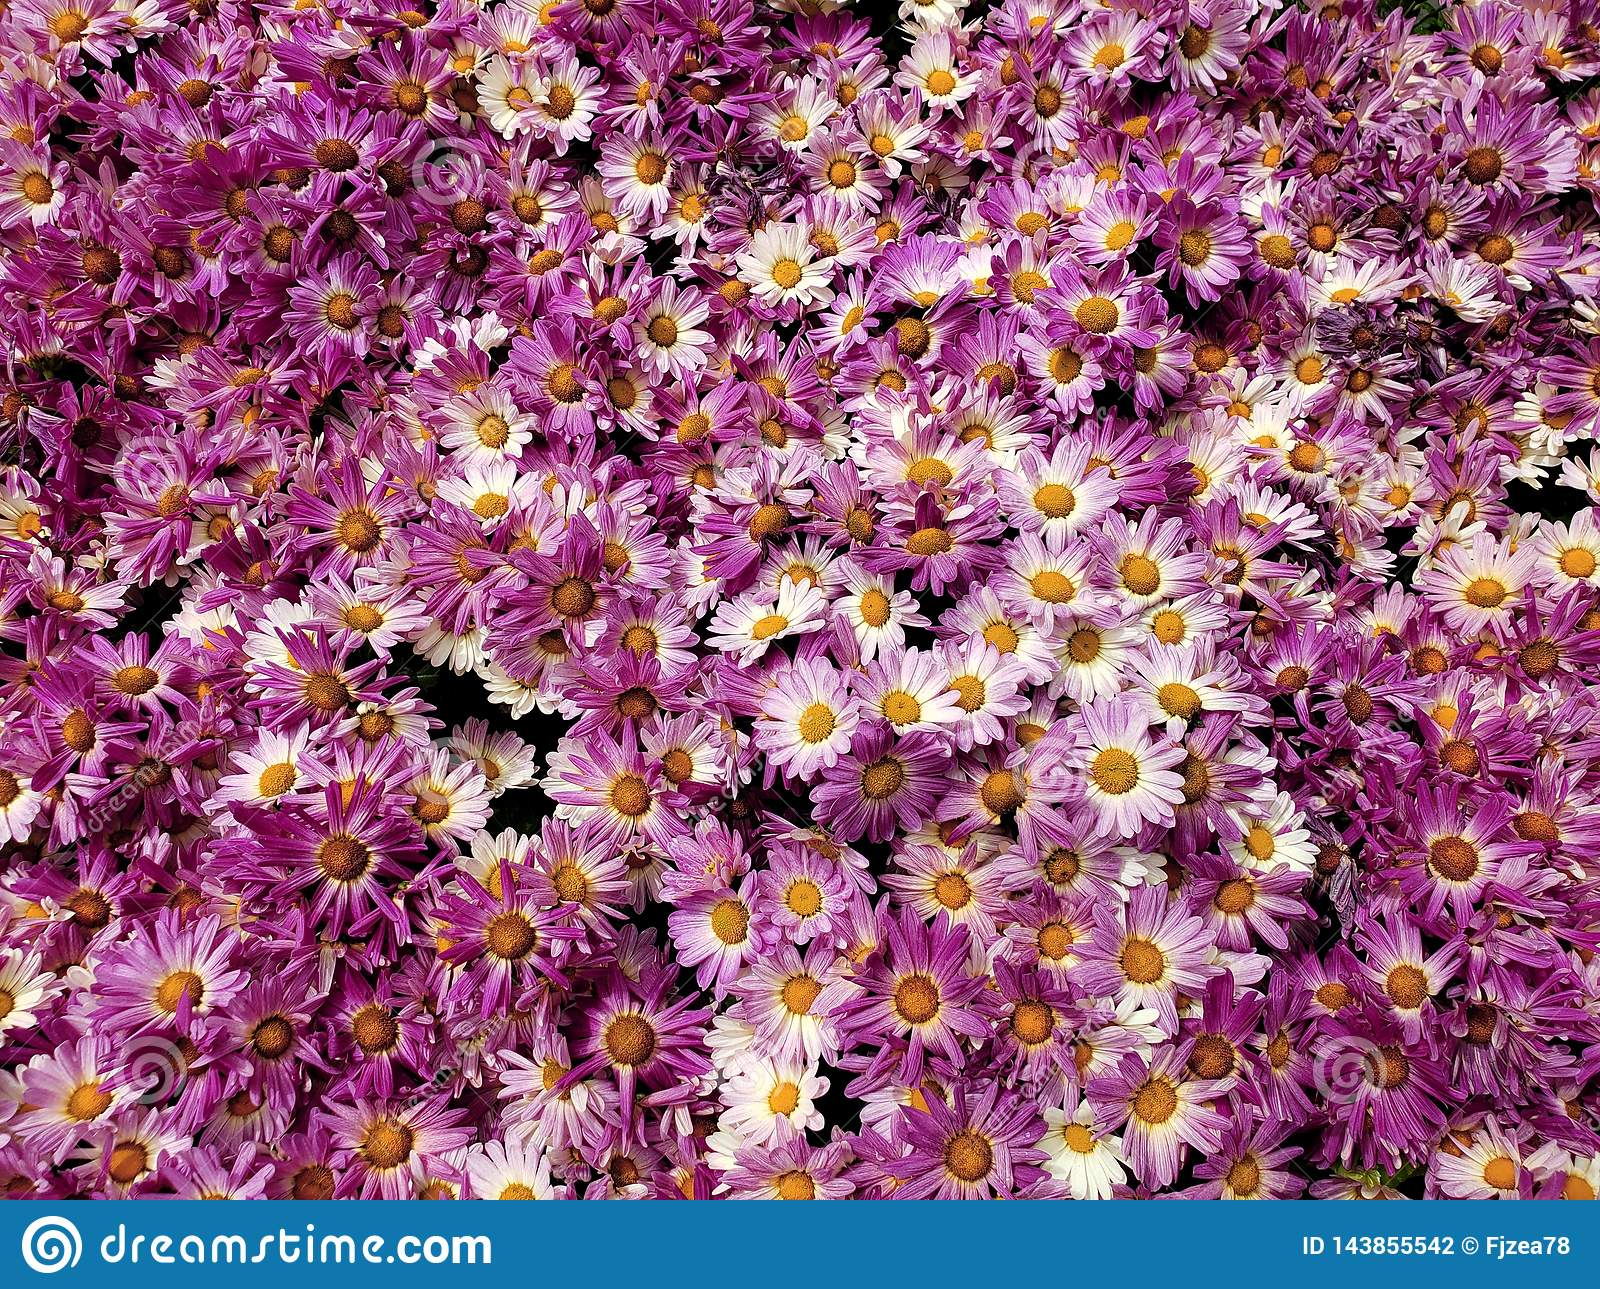 purple daisy flowers with white in a botanical garden, background and texture